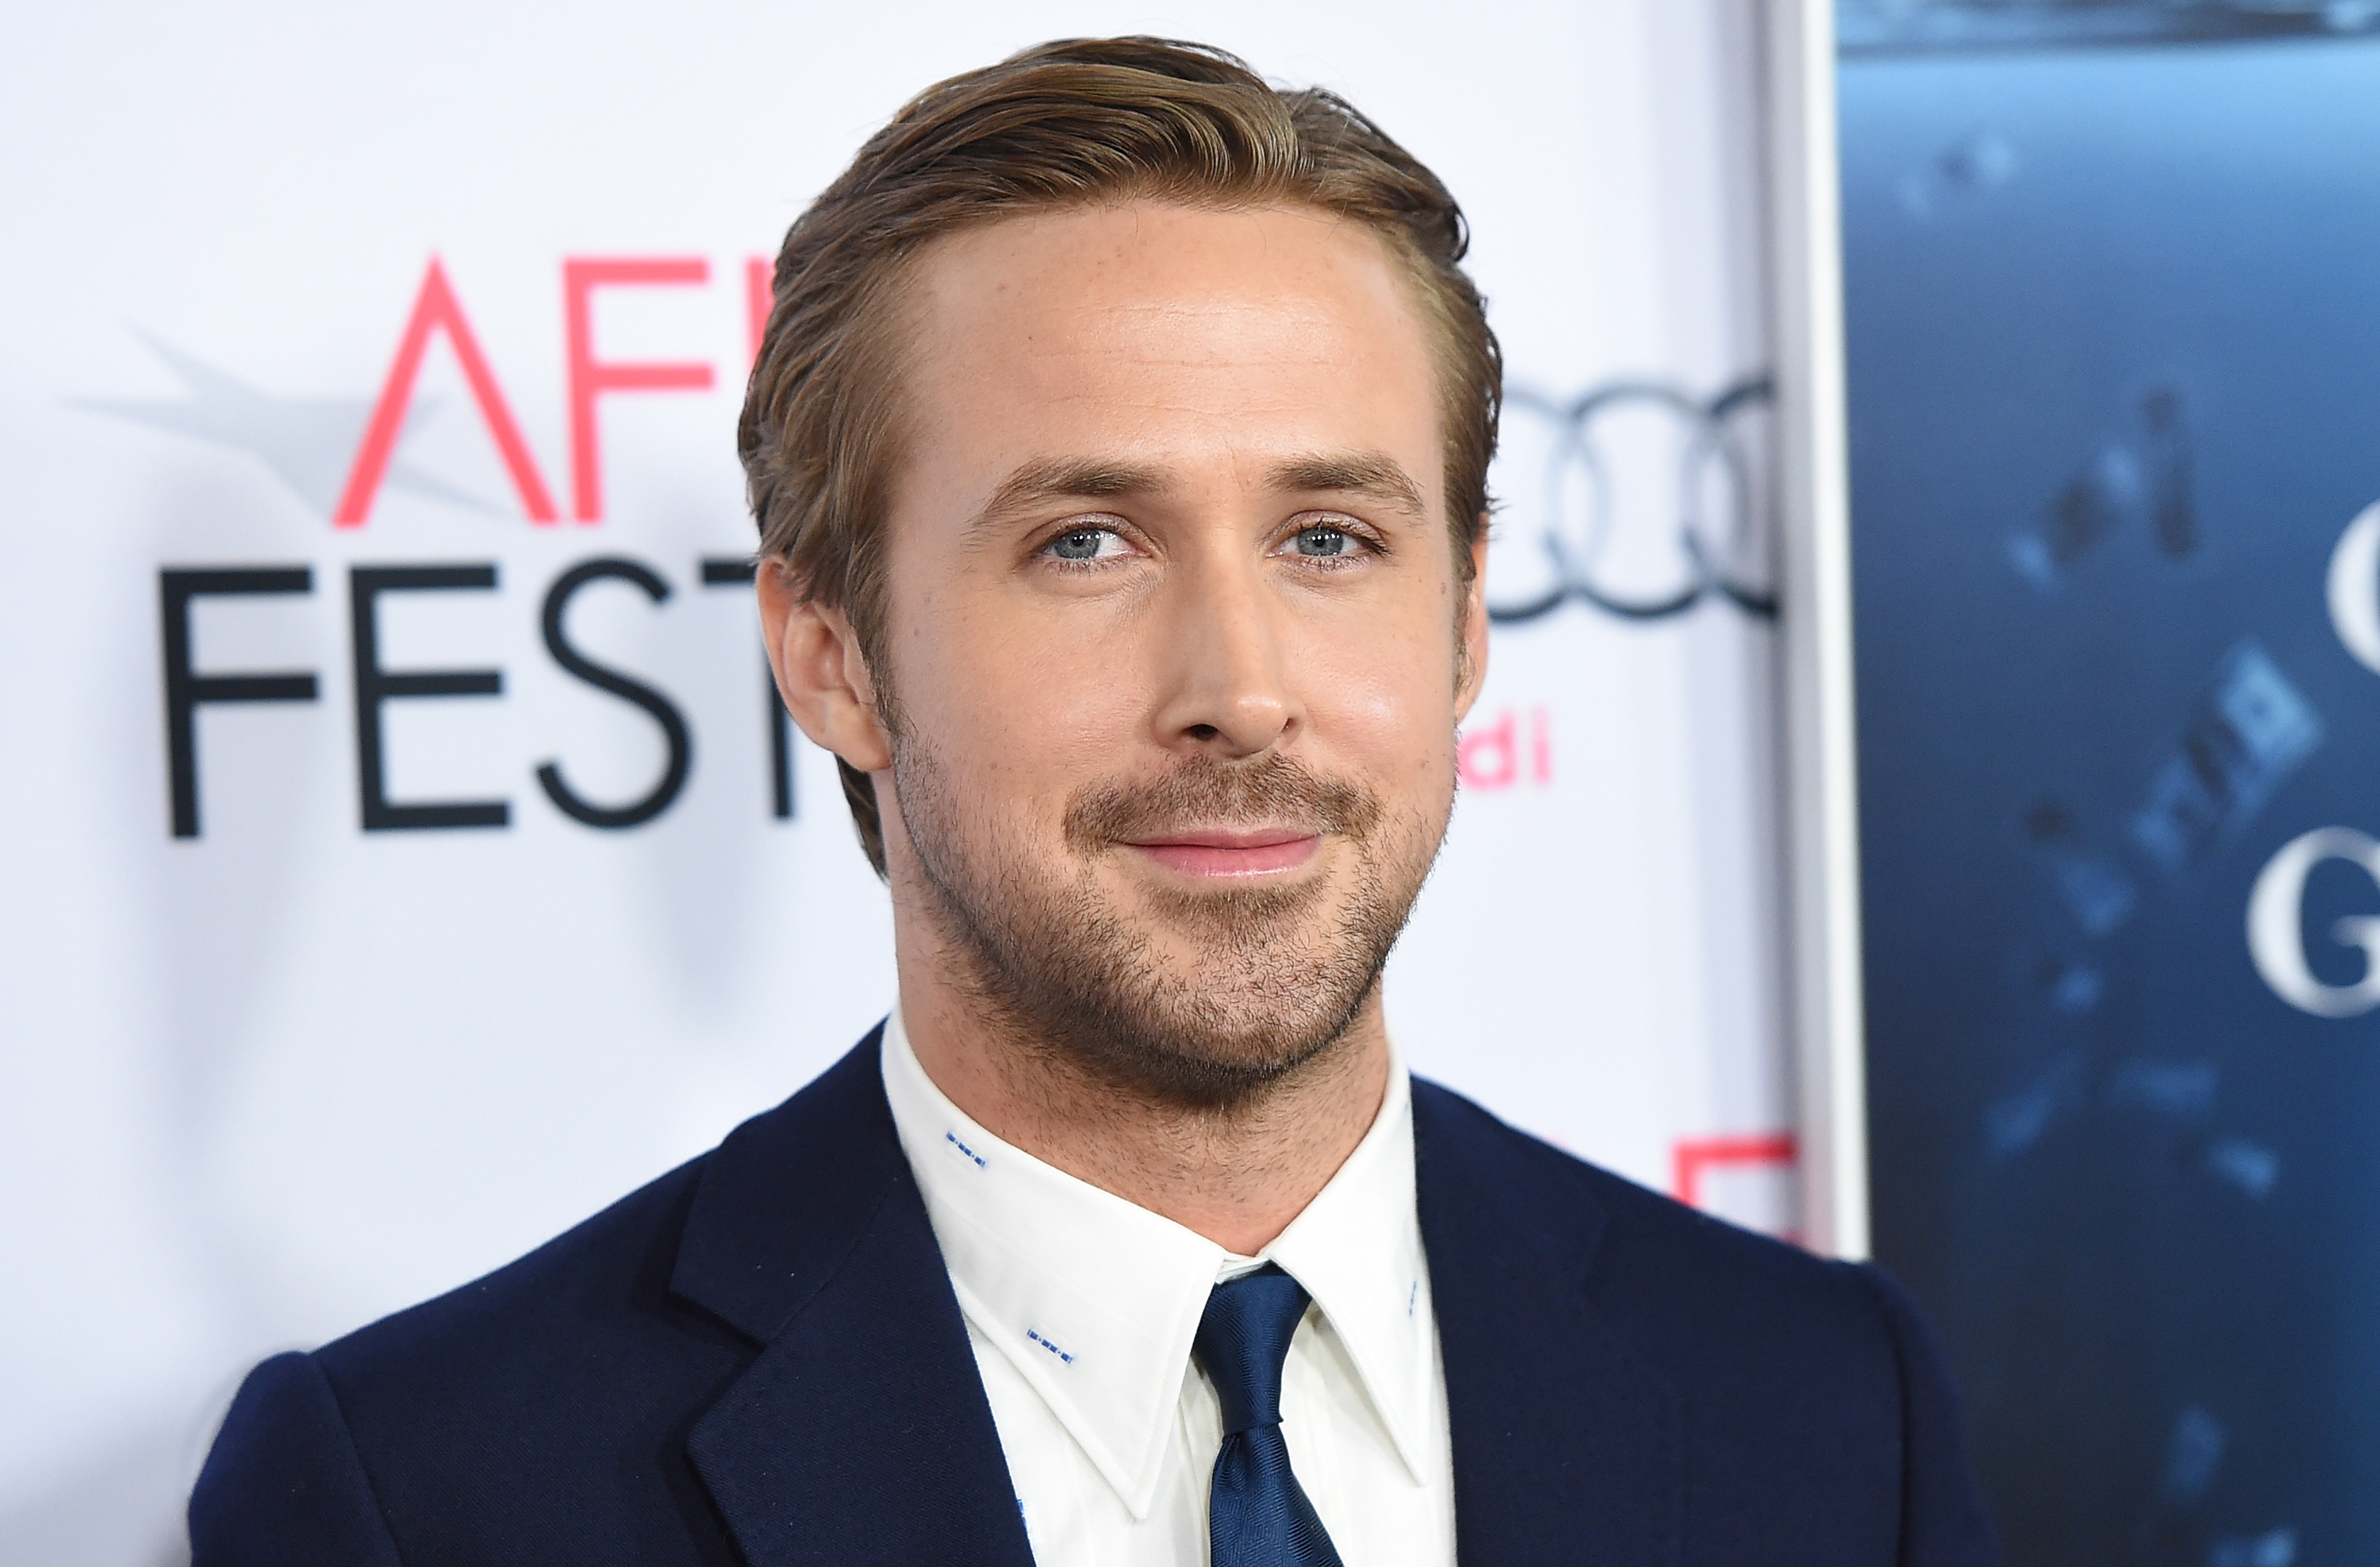 Harrison Ford 'punched Ryan Gosling in the face by mistake' while filming Blade Runner sequel